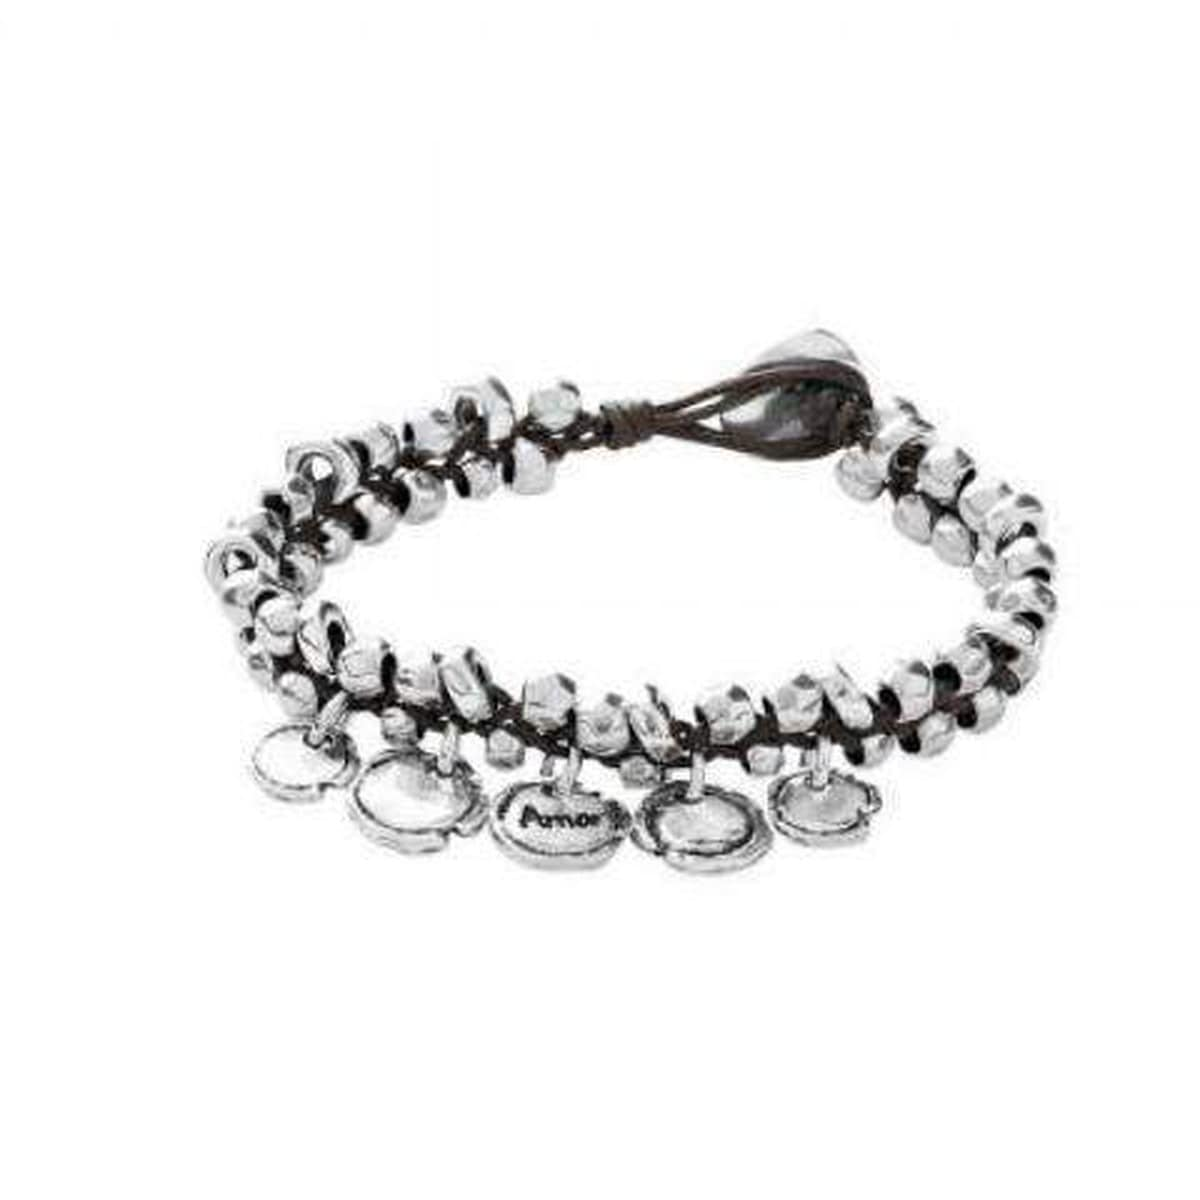 Classified Bracelet - PUL1603MTLMAR-UNO de 50-Renee Taylor Gallery